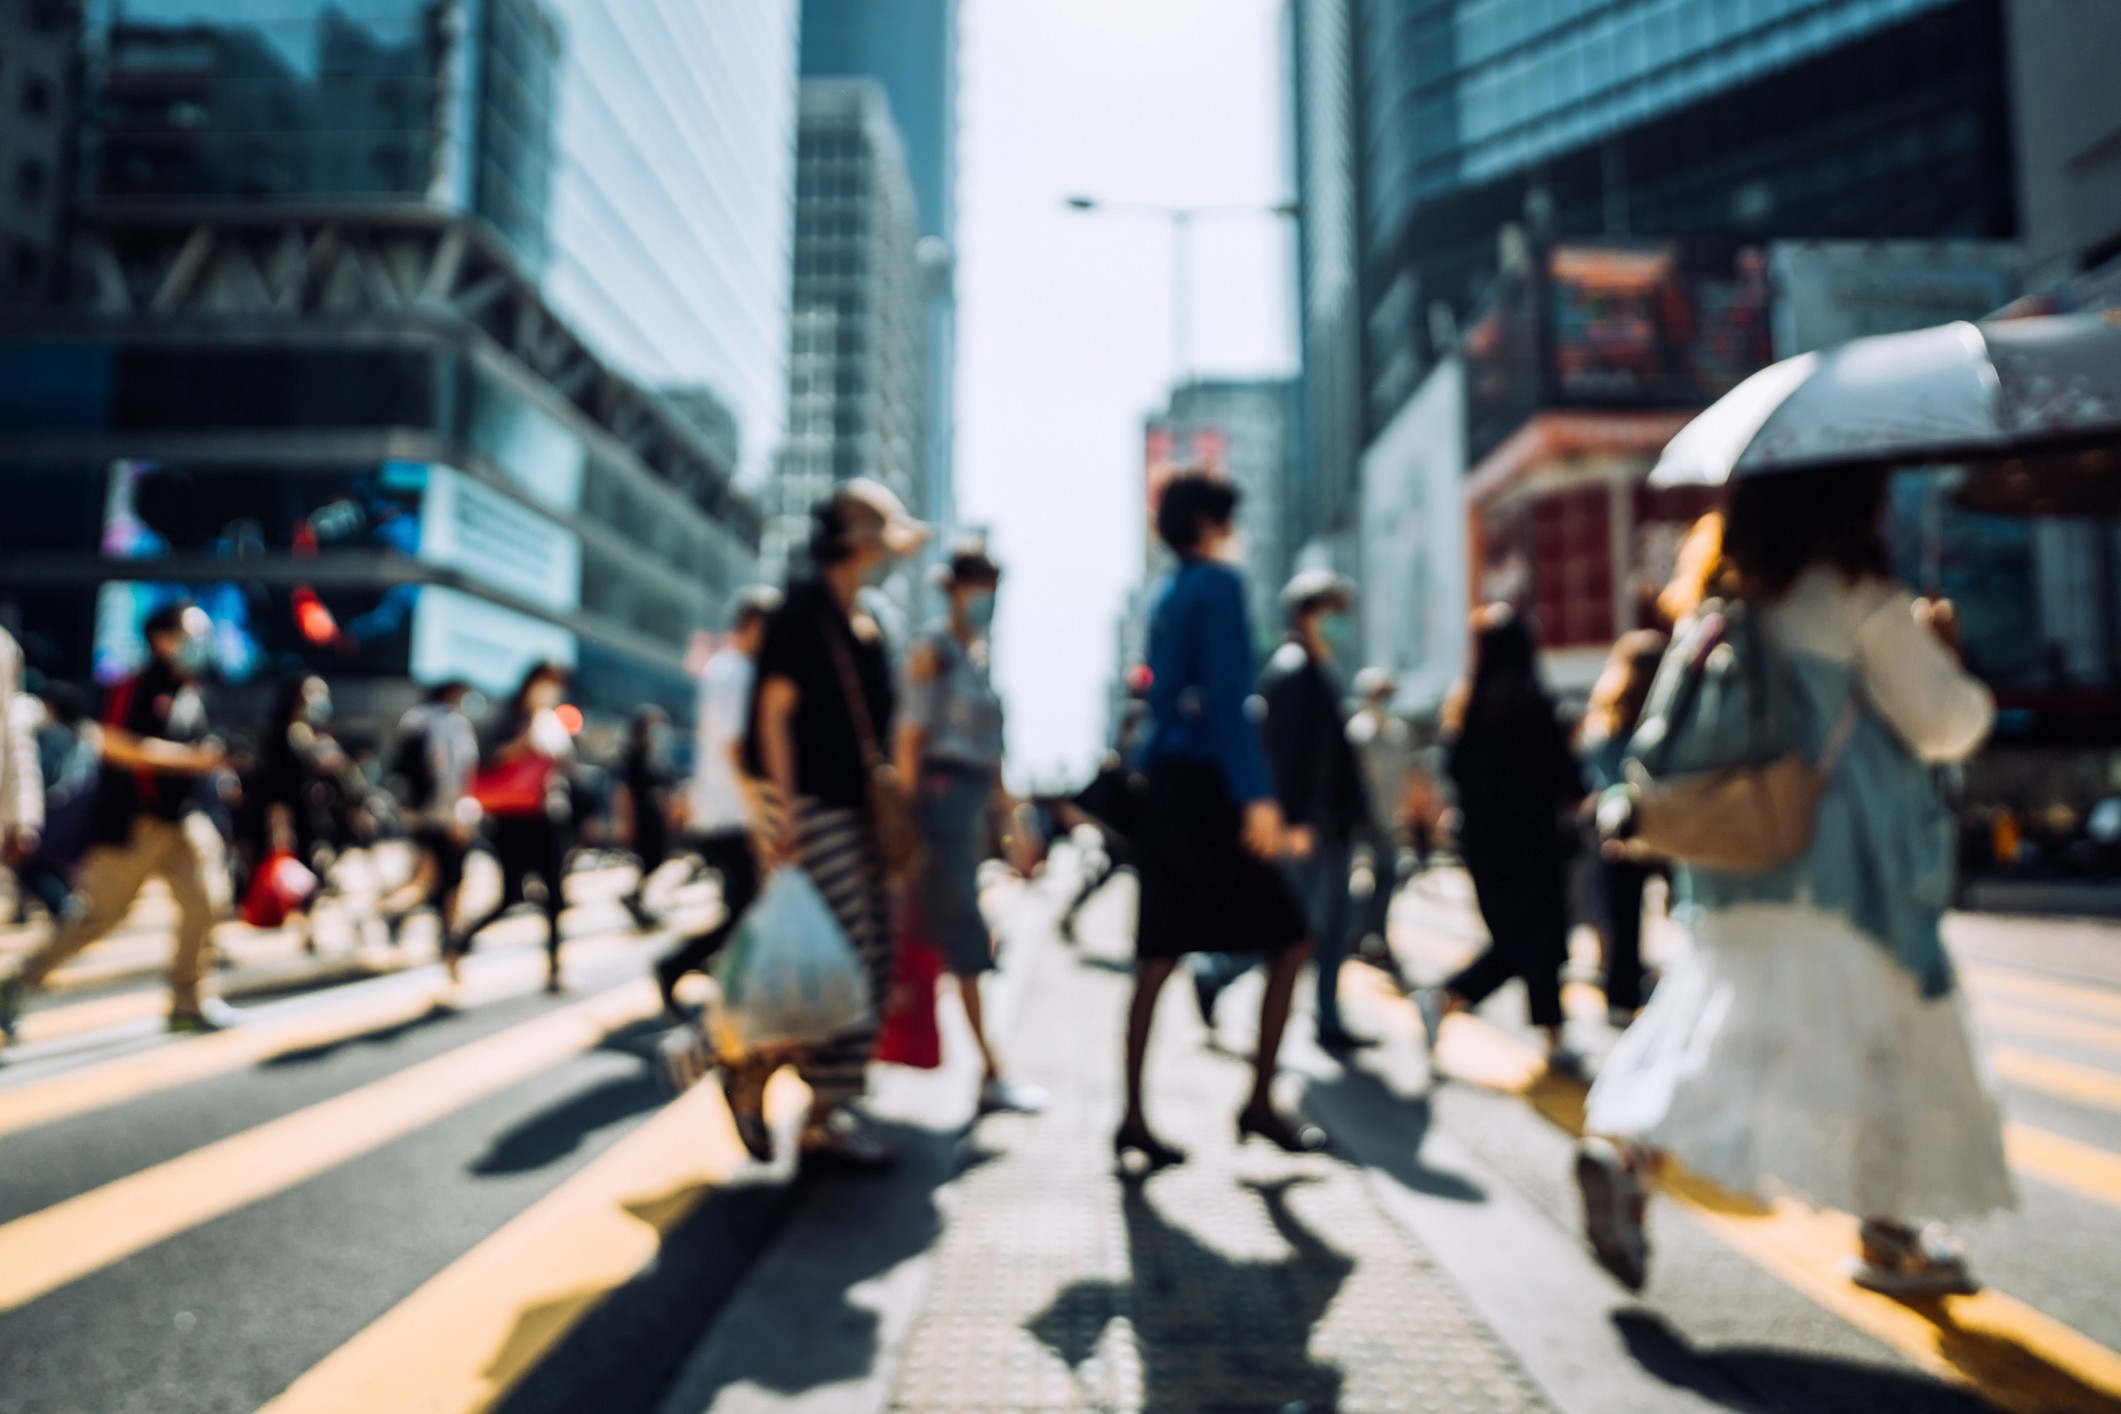 Blurred image of people walking at a crosswalk in a city.